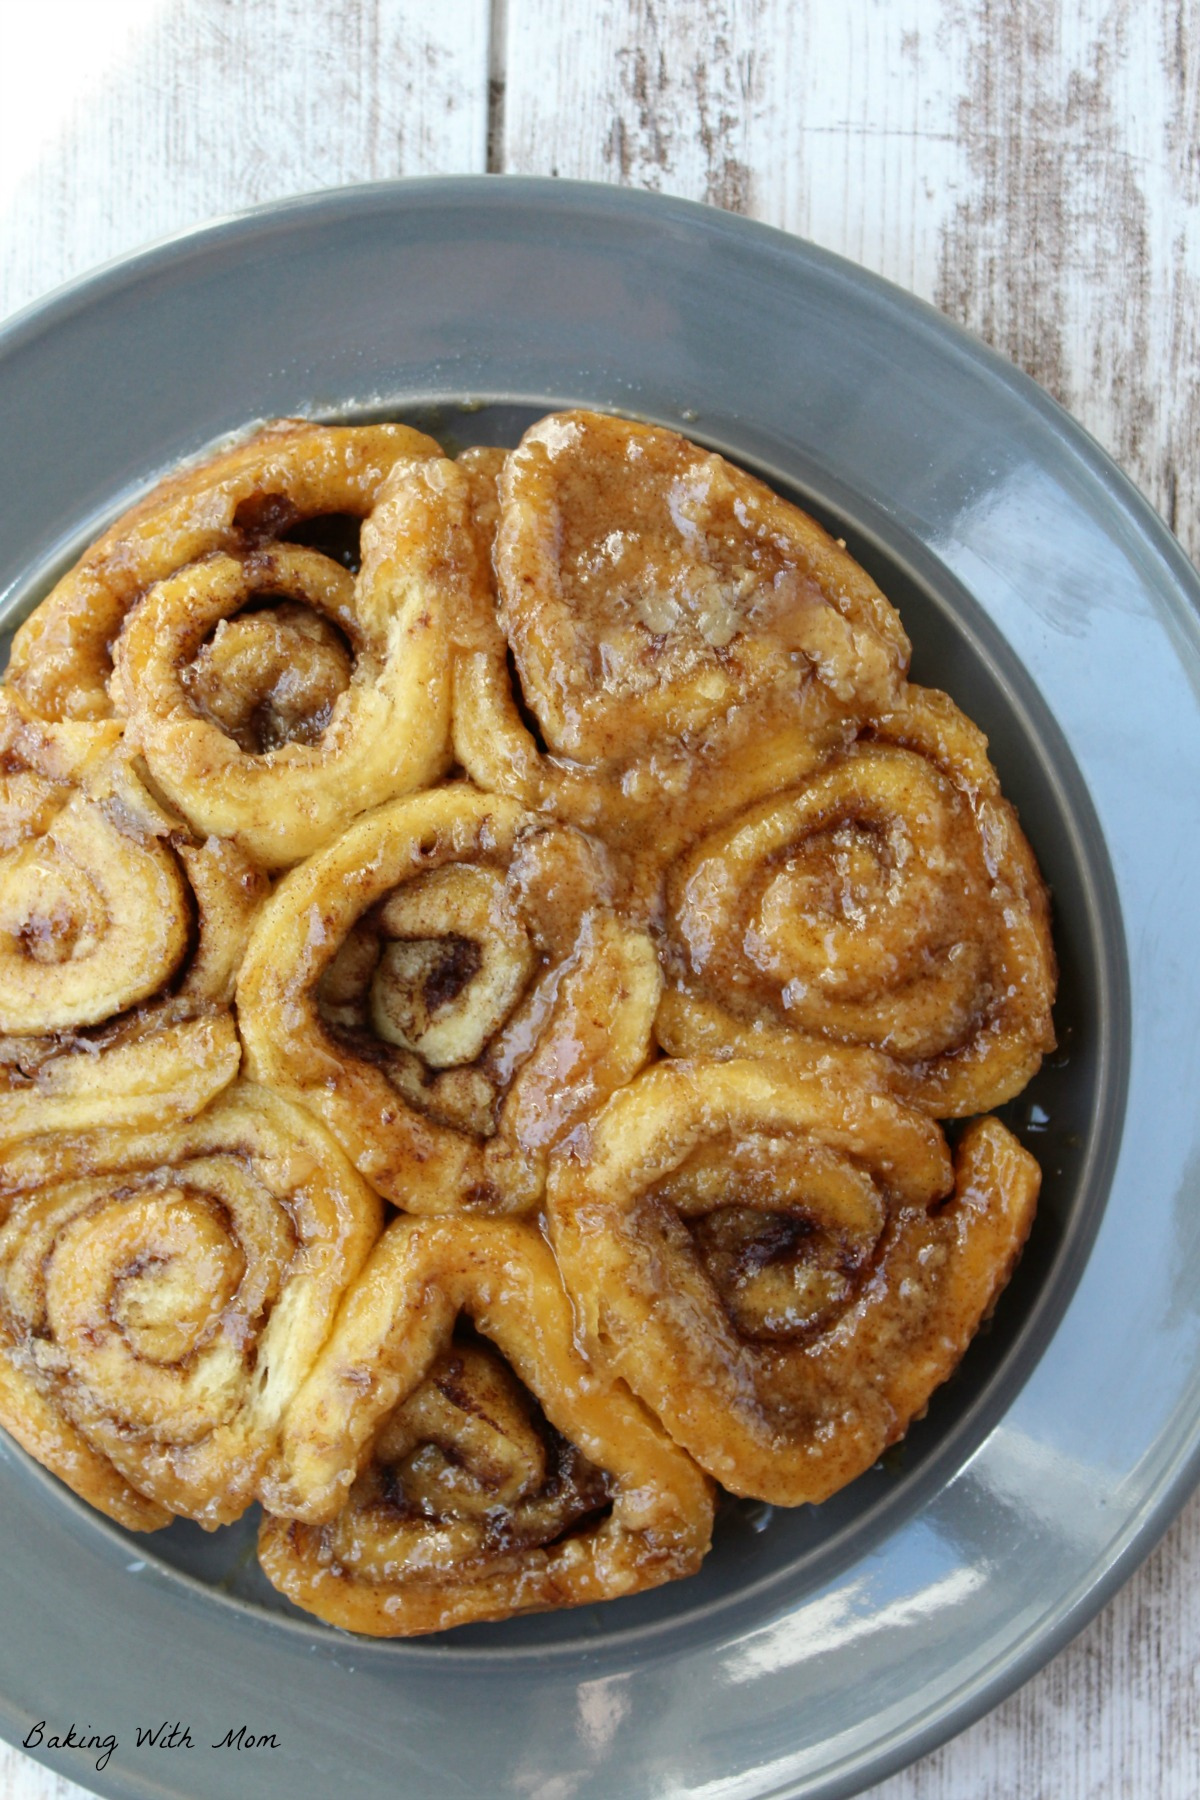 Cinnamon rolls on a gray plate with toppings of brown sugar